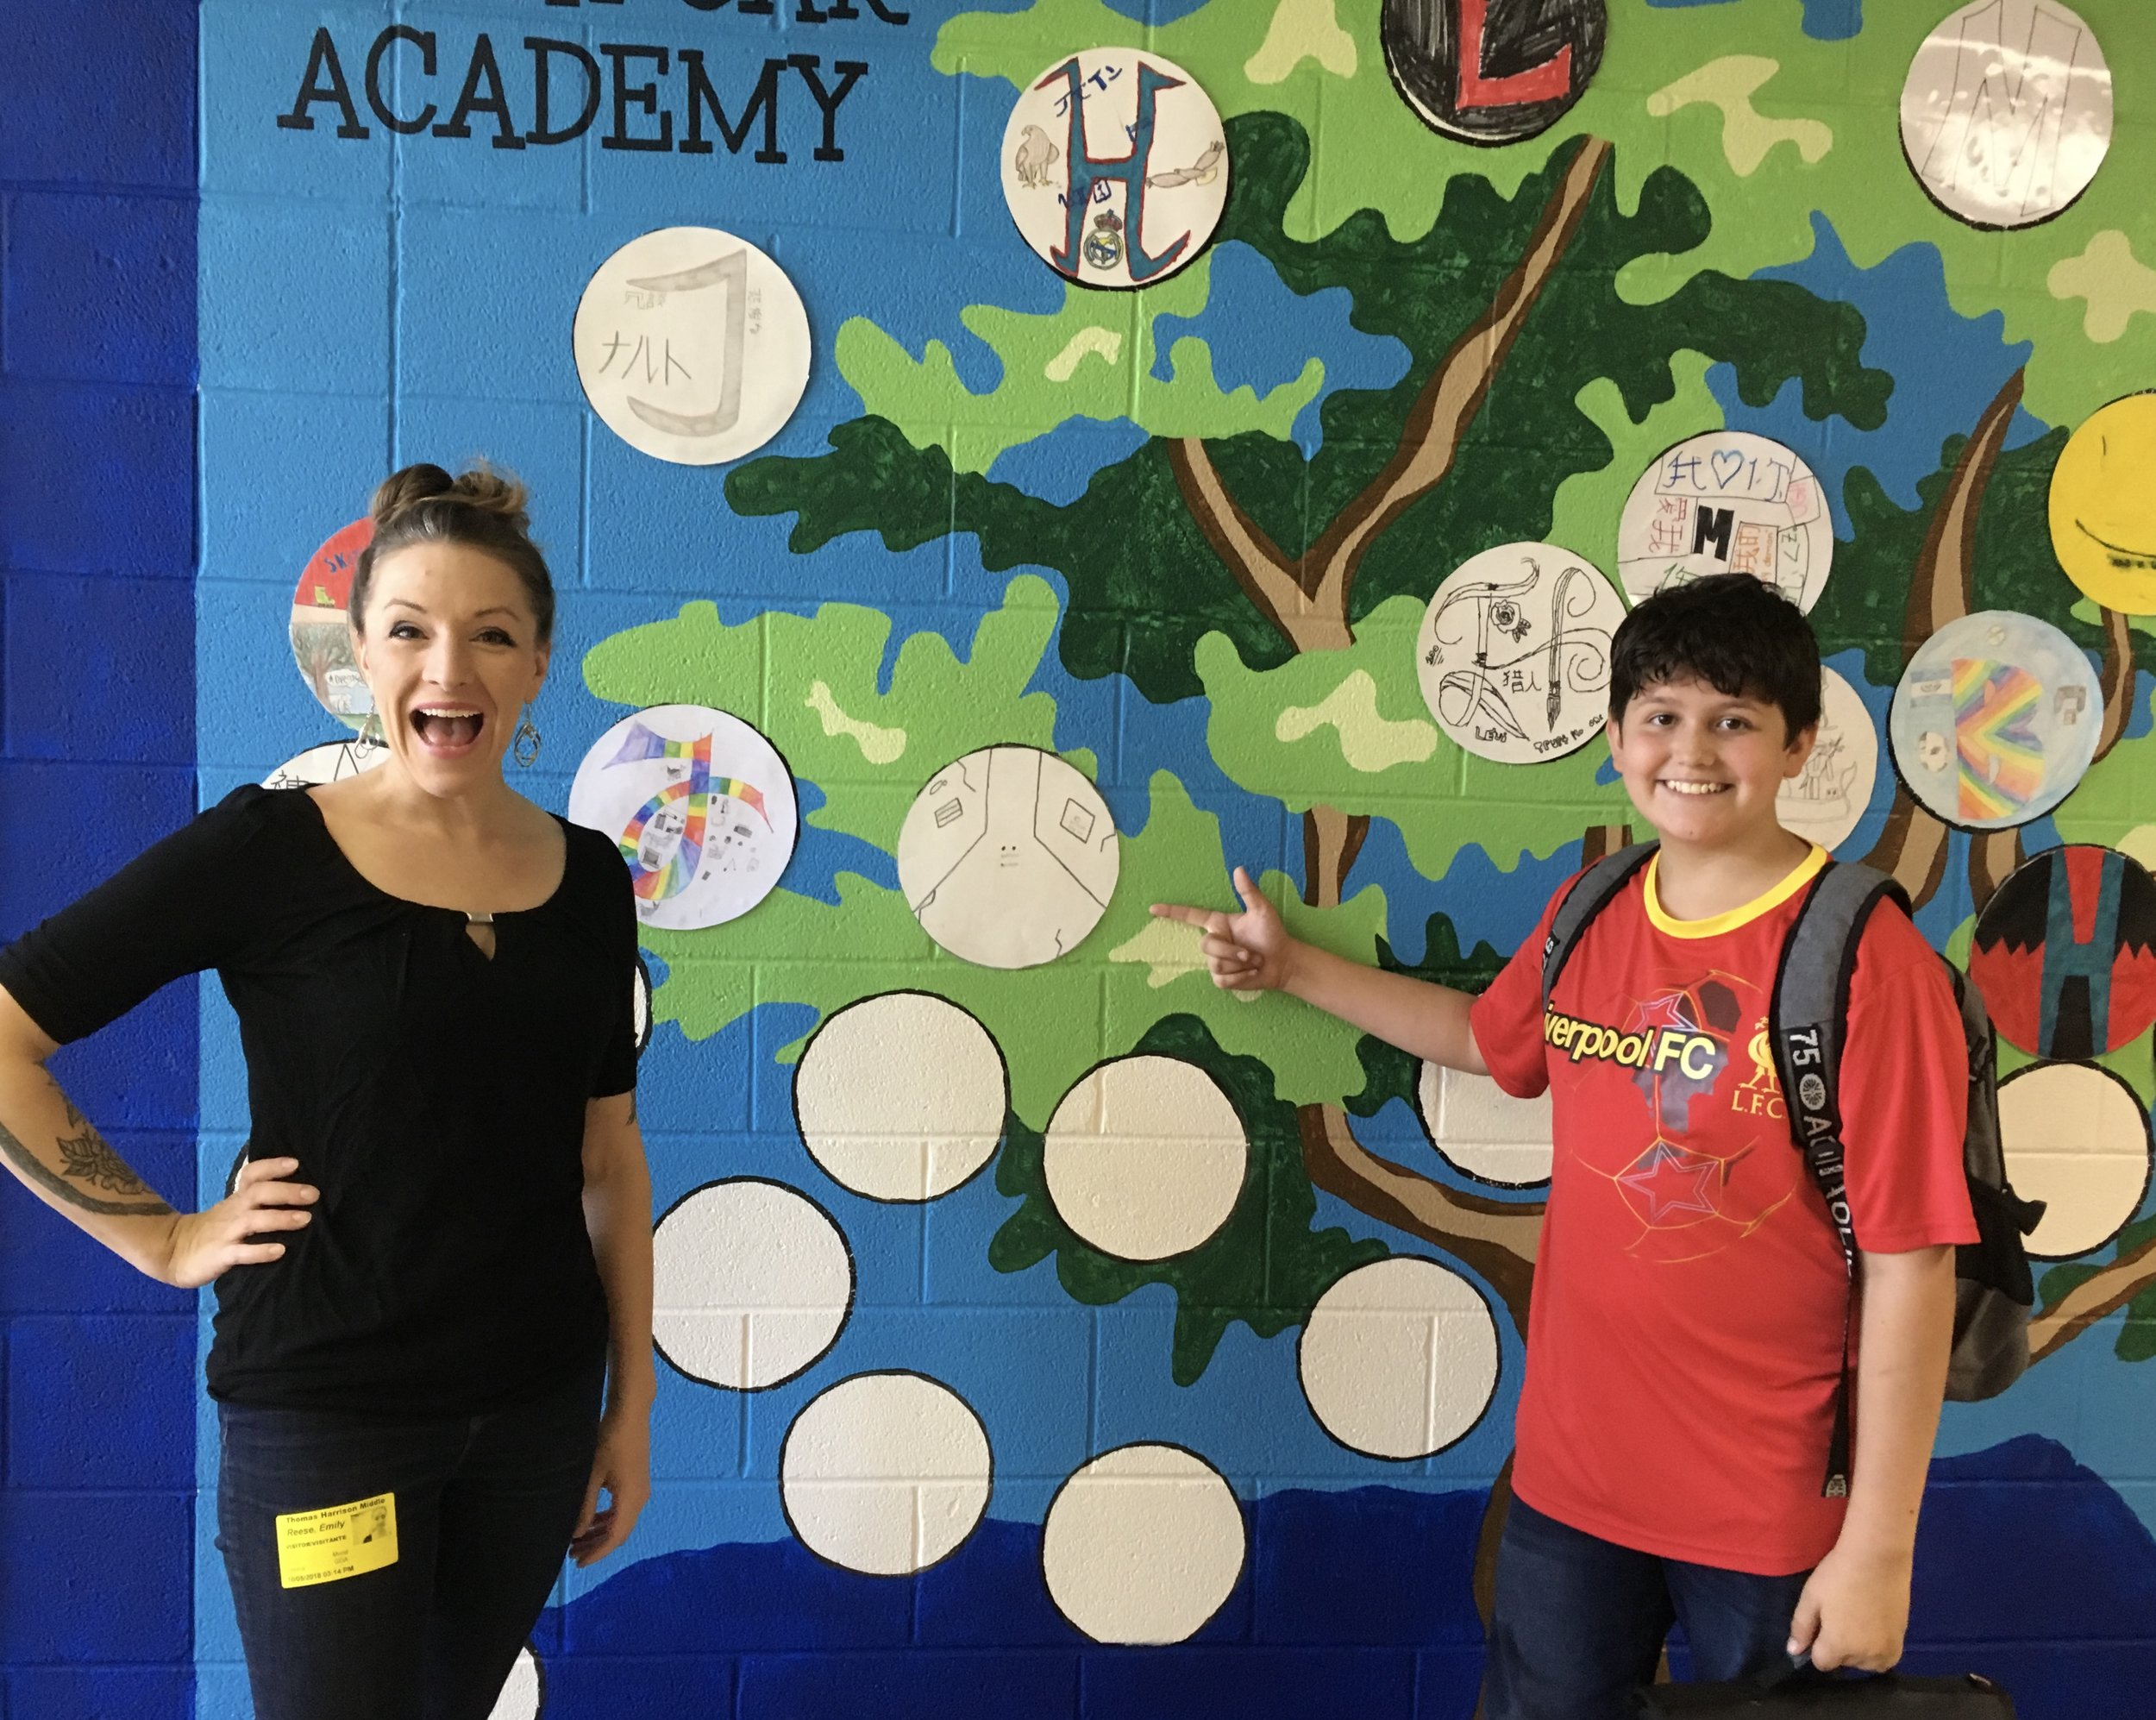 Our founder and one of our student participants show off the collaborative mural!